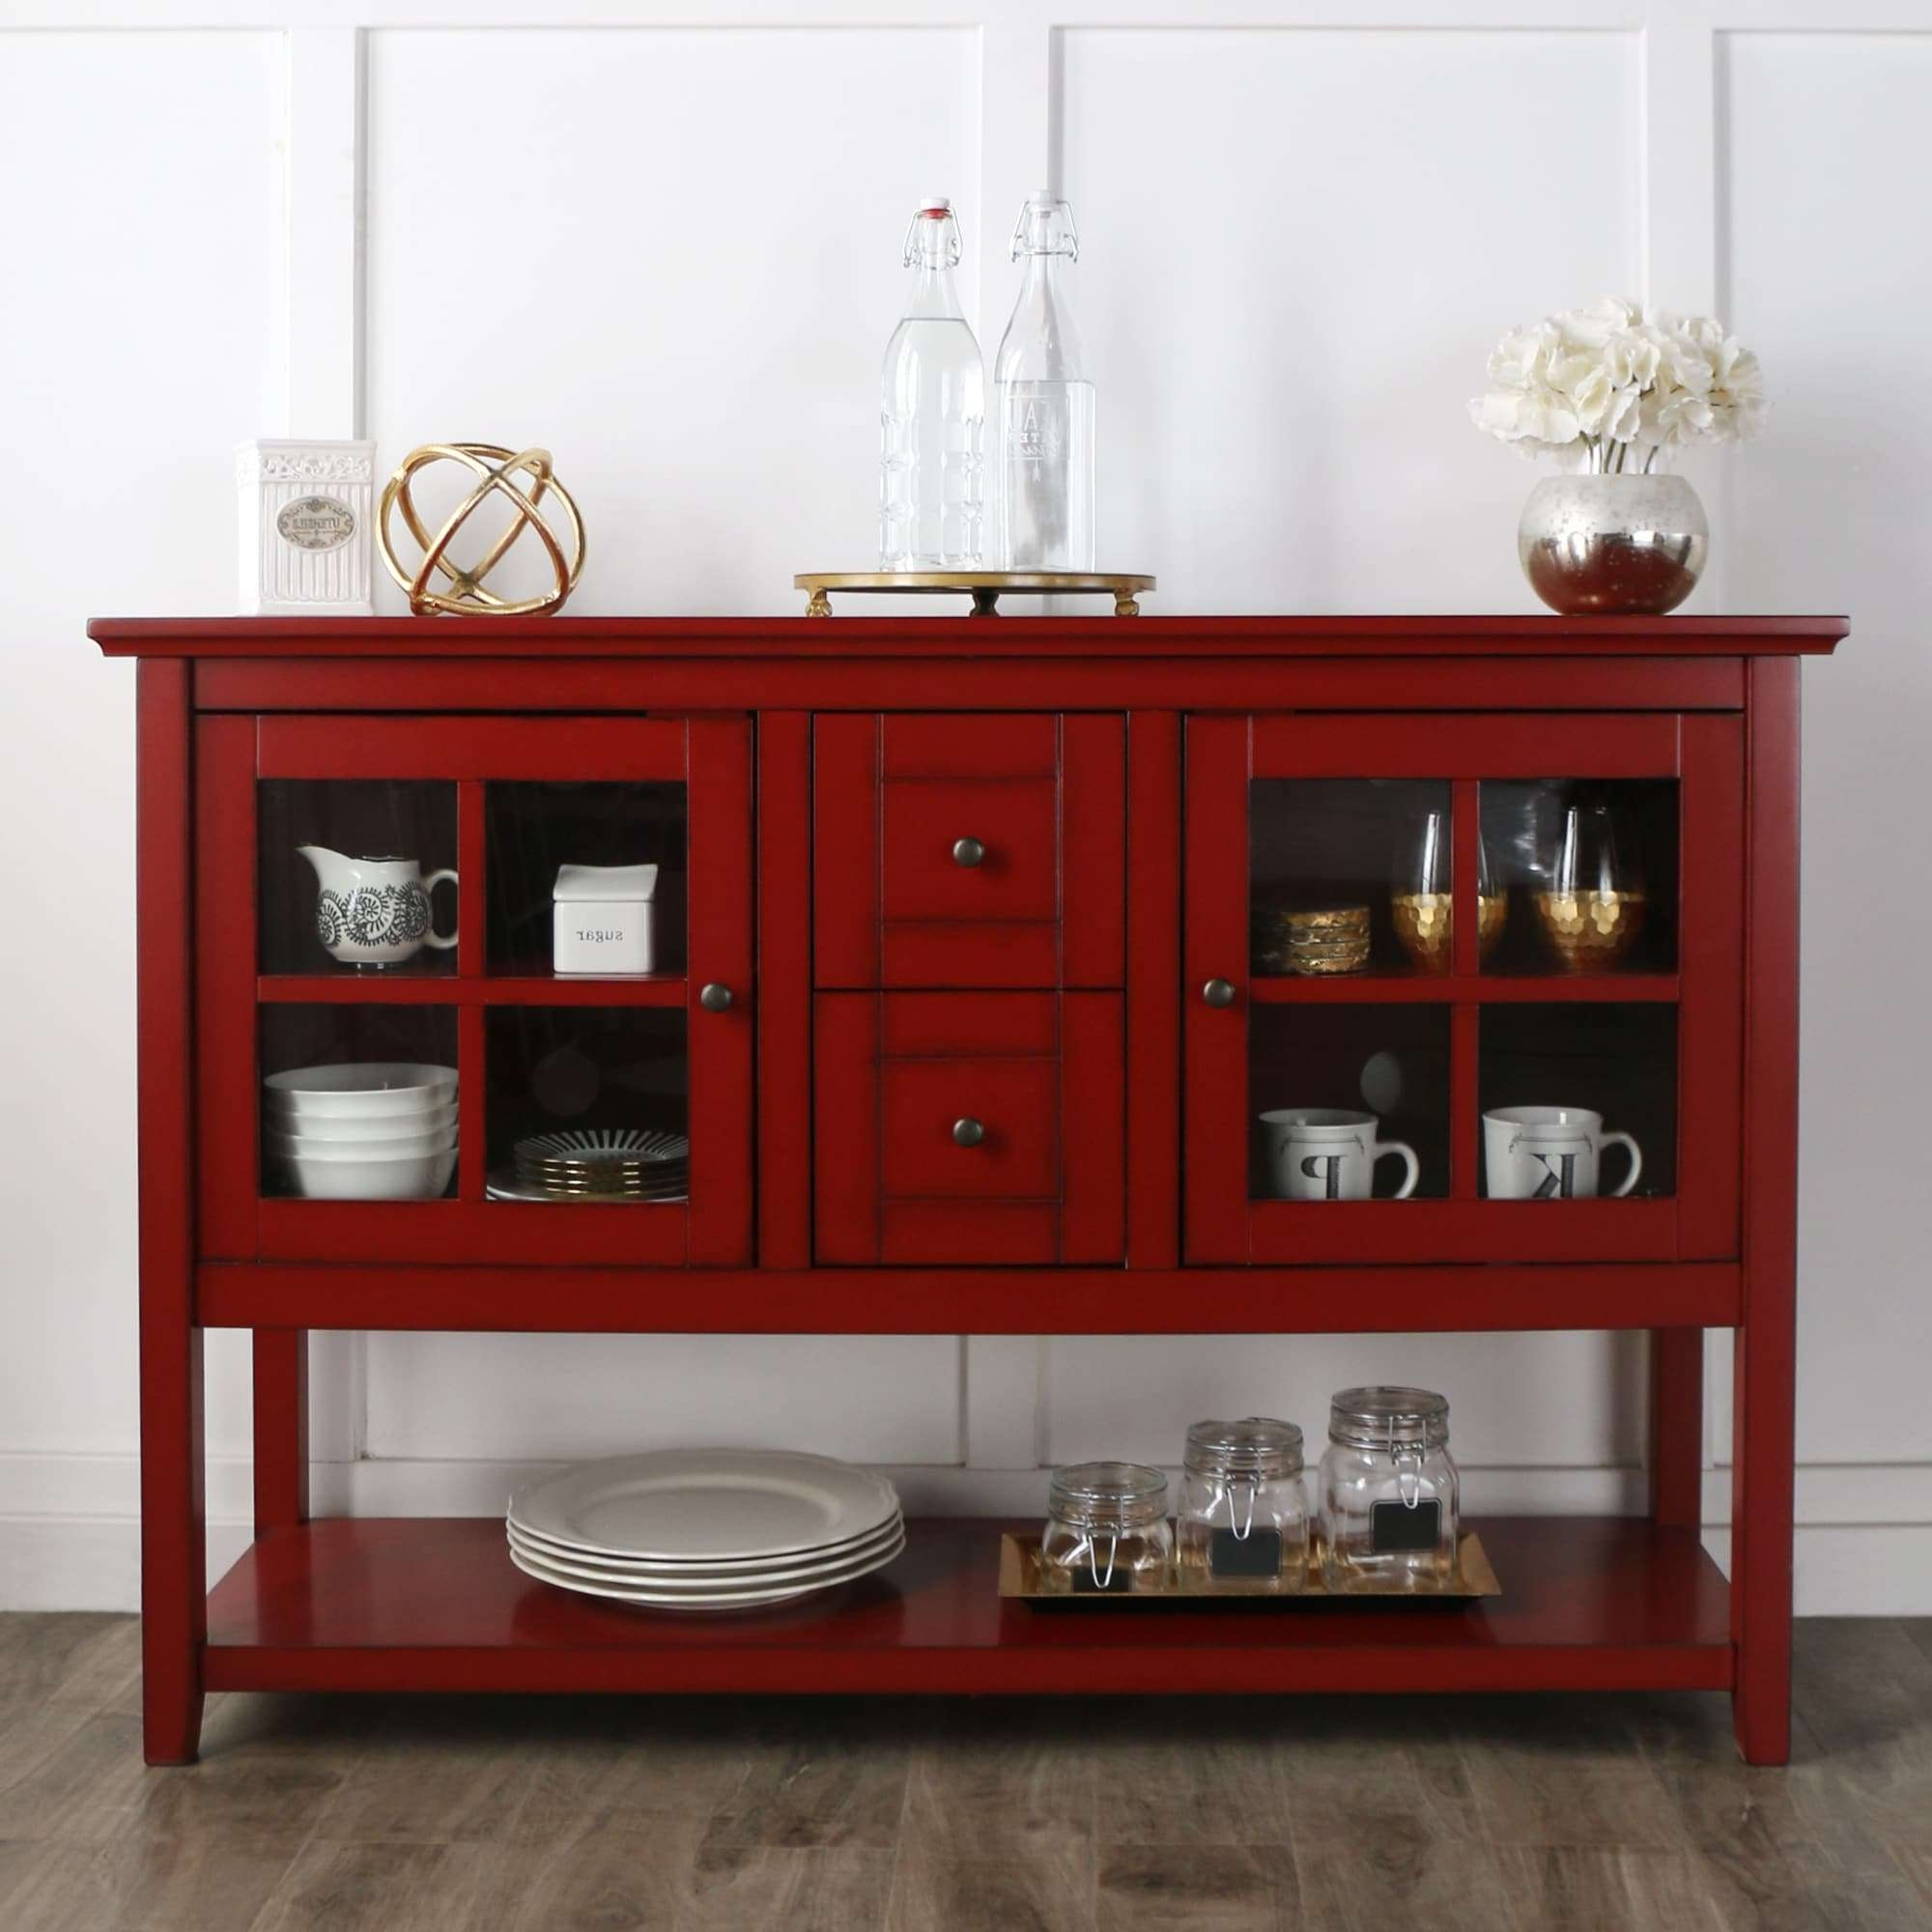 52 Inch Antique Red Wood Console Table/ Buffet – Free Shipping Pertaining To Red Sideboards Buffets (View 1 of 20)